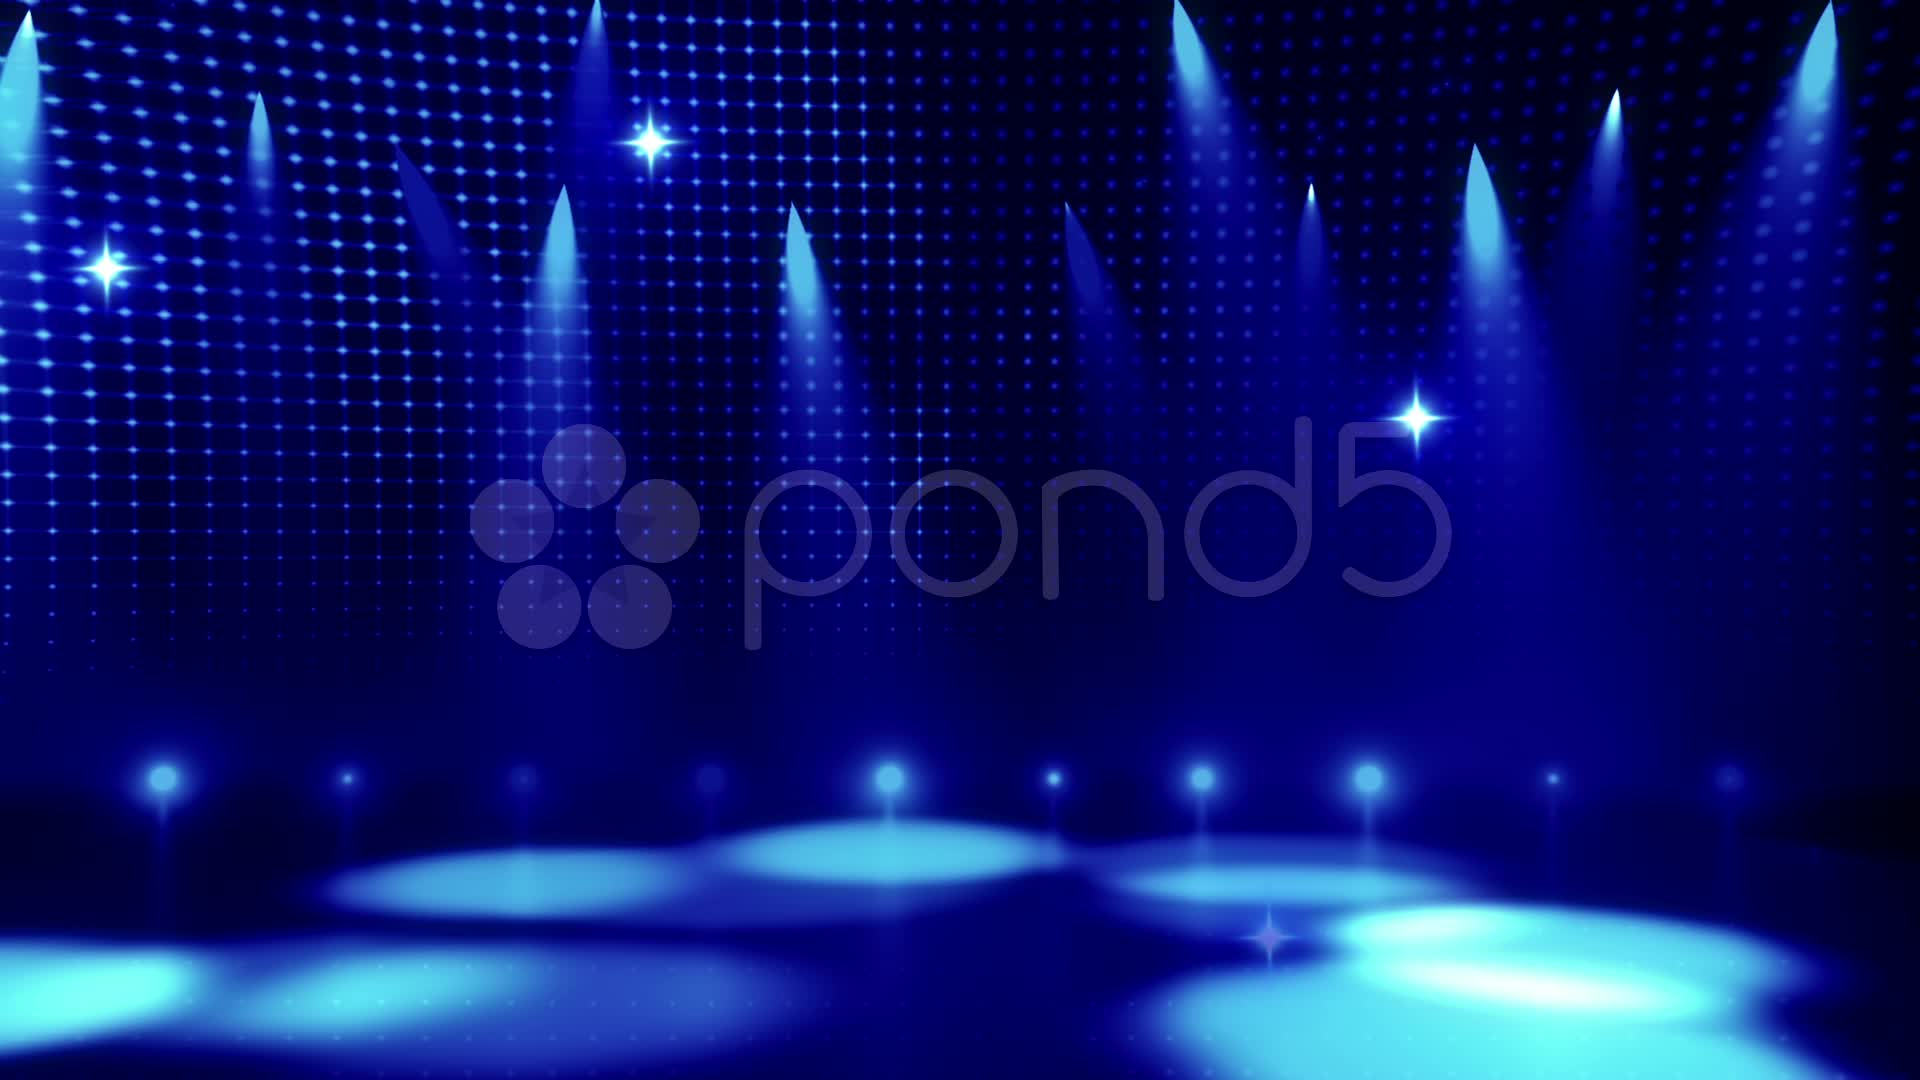 Disco stage 7 stock video footage 15369895 pond5 for 1234 get on the dance floor hd video download